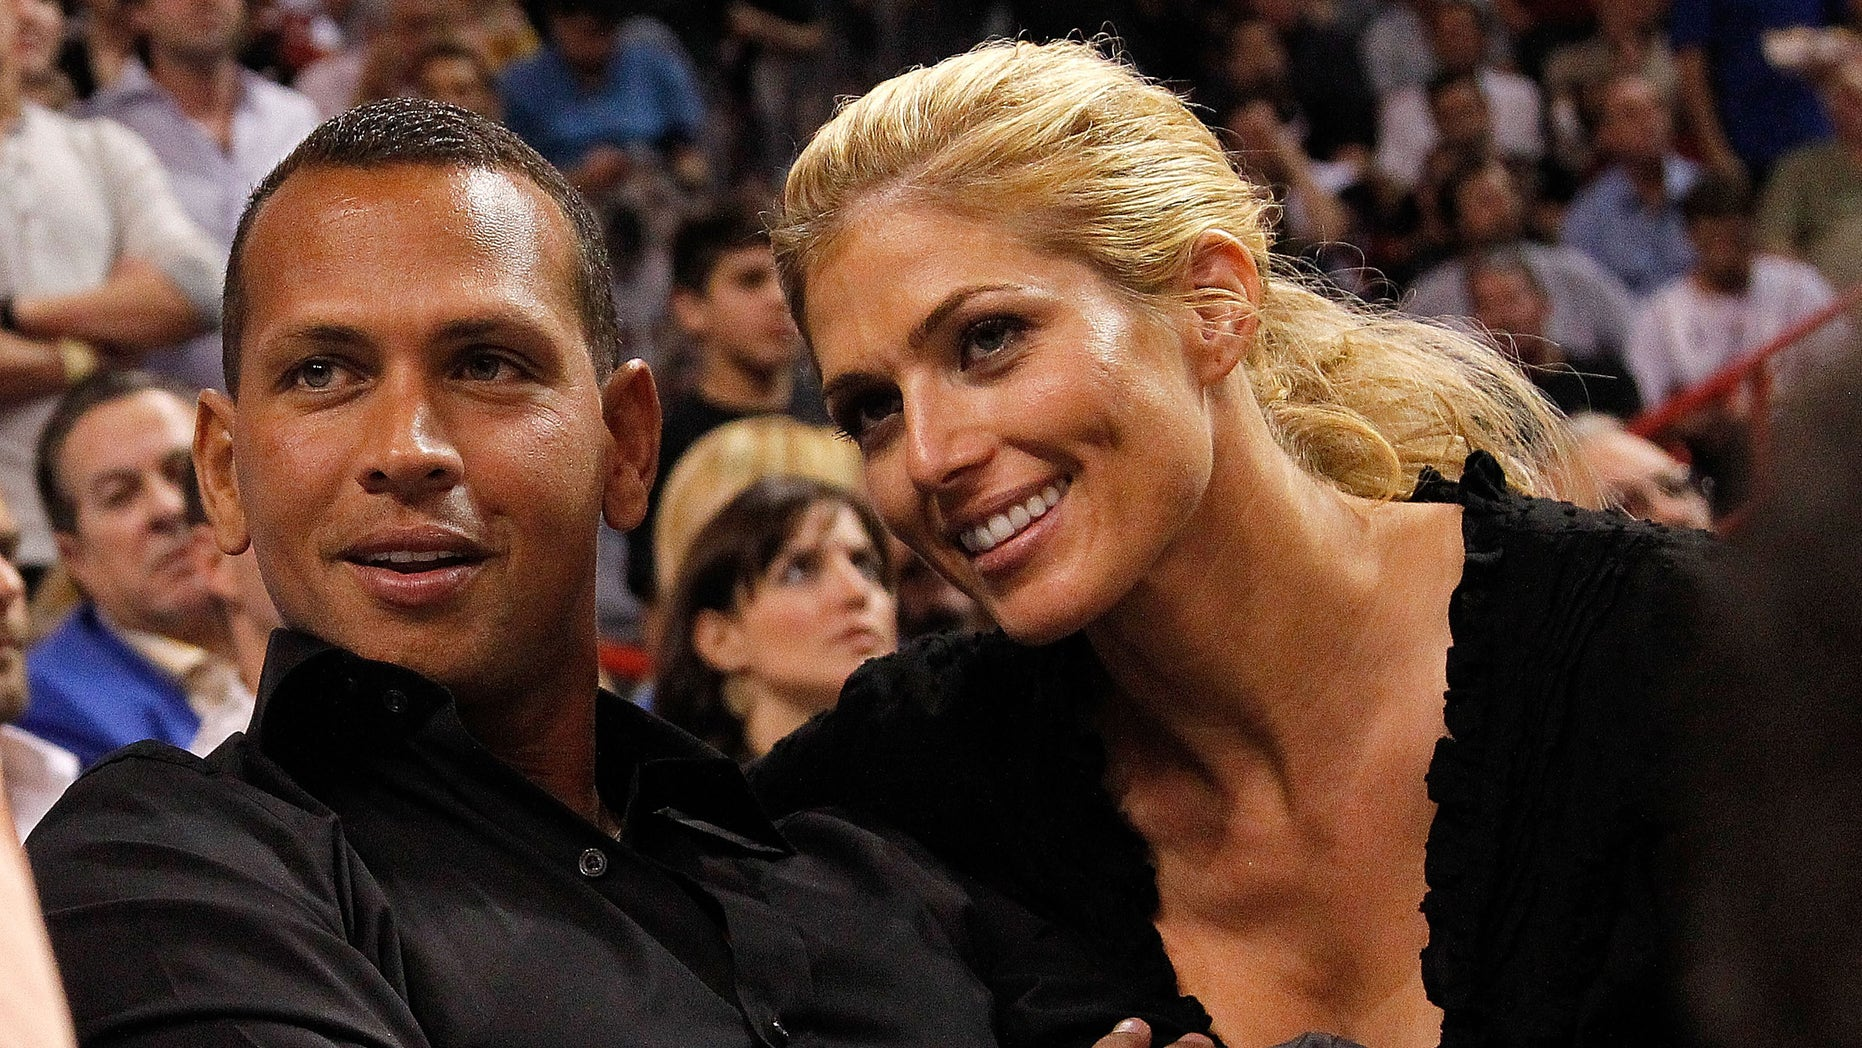 MIAMI, FL - JANUARY 17: Baseball player Alex Rodriguez (L) of the New York Yankees and Torrie Wilson watch a game between the Miami Heat and the San Antonio Spurs at American Airlines Arena on January 17, 2012 in Miami, Florida. NOTE TO USER: User expressly acknowledges and agrees that, by downloading and/or using this Photograph, User is consenting to the terms and conditions of the Getty Images License Agreement.  (Photo by Mike Ehrmann/Getty Images)